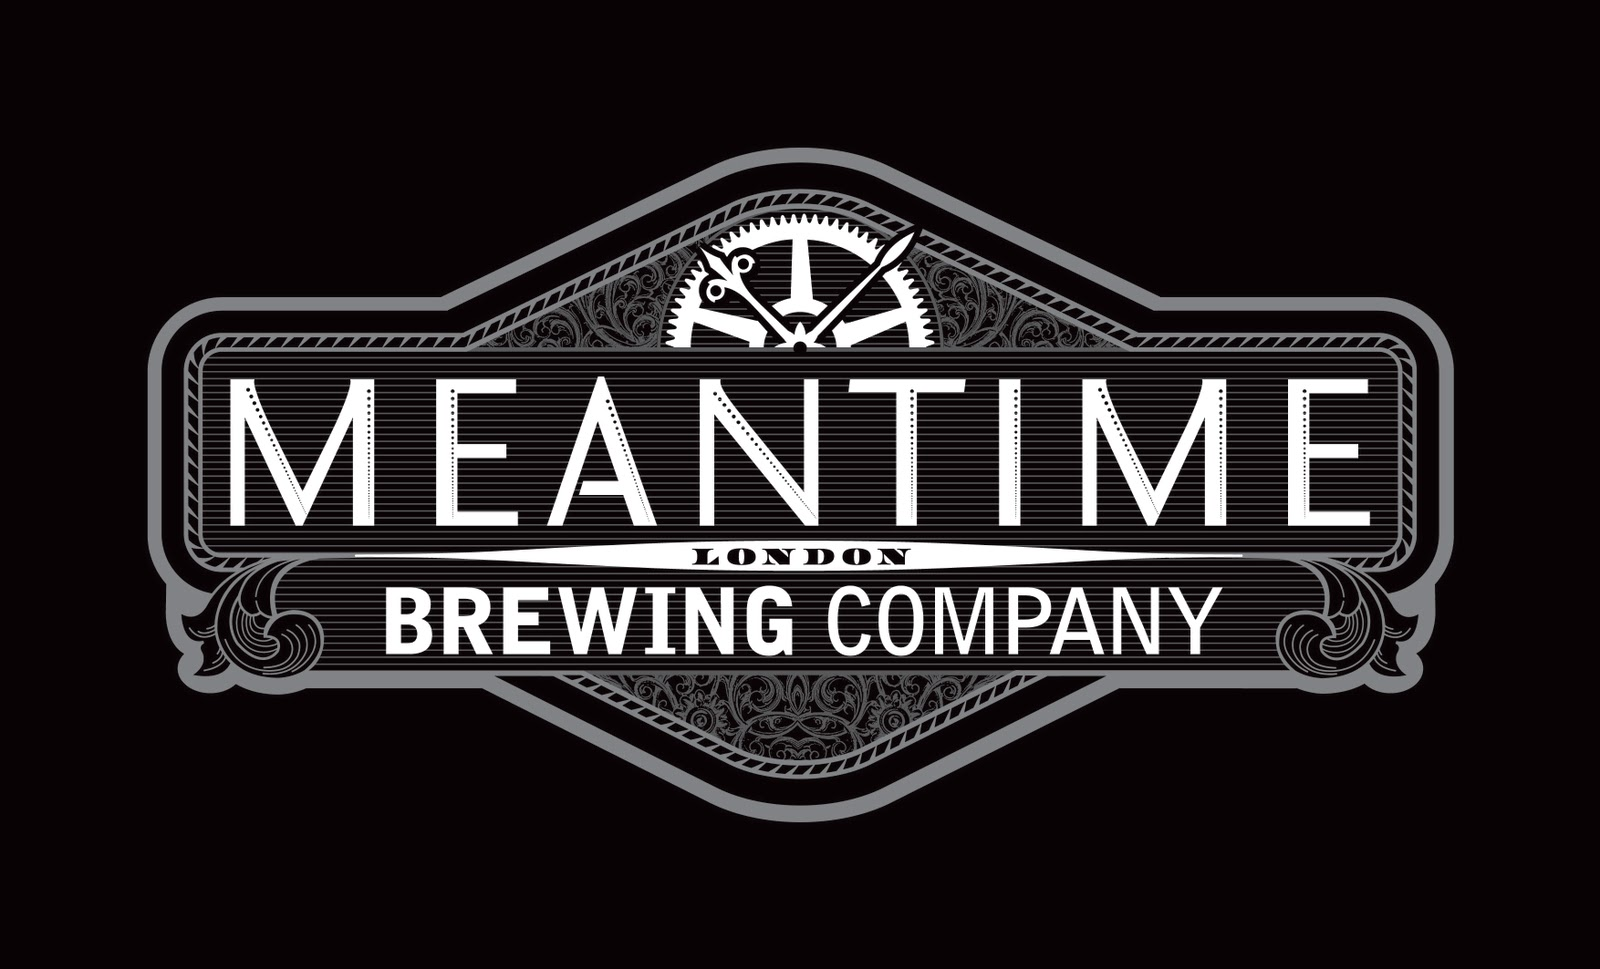 Meantime logo 2